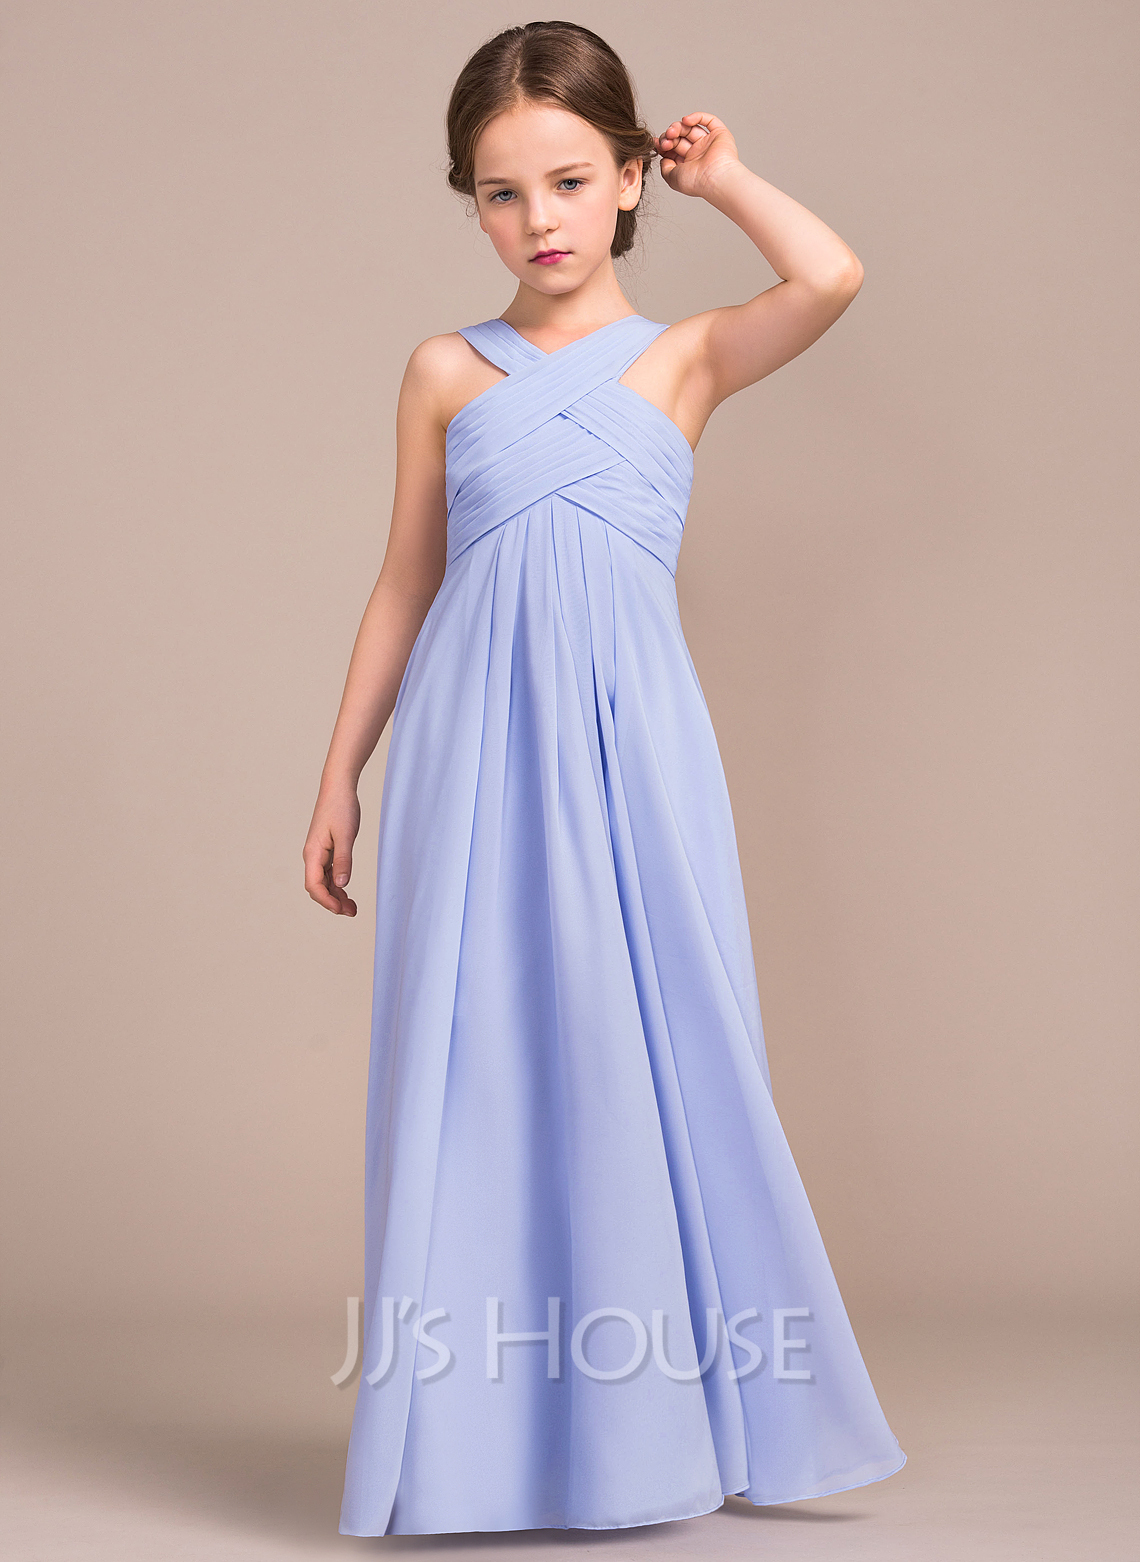 A lineprincess v neck floor length chiffon junior bridesmaid a lineprincess v neck floor length chiffon junior bridesmaid dress with loading zoom ombrellifo Images